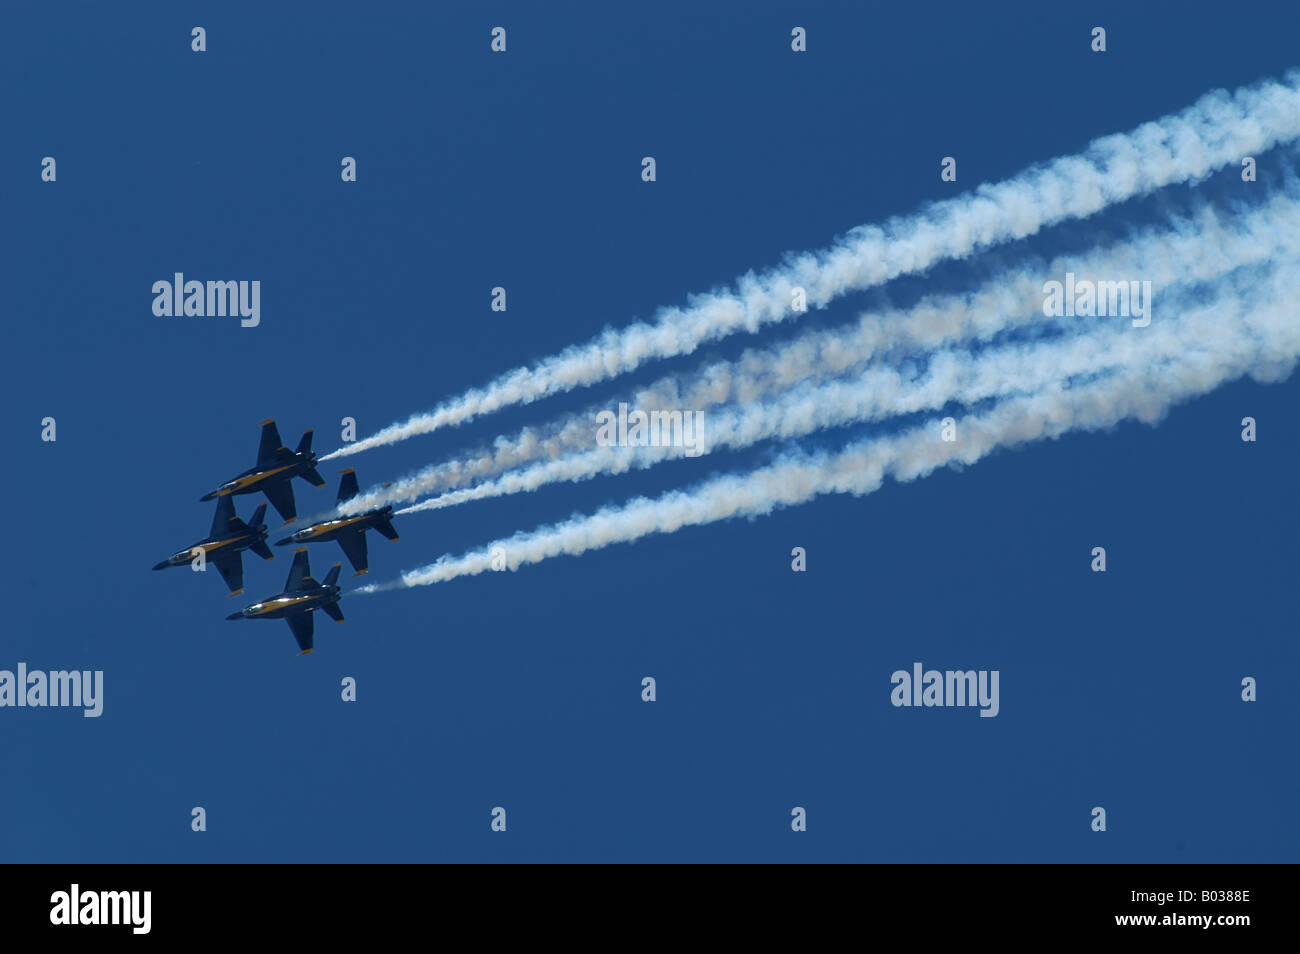 Dayton Ohio air show blue angles aircraft airplanes jets navy show - Stock Image